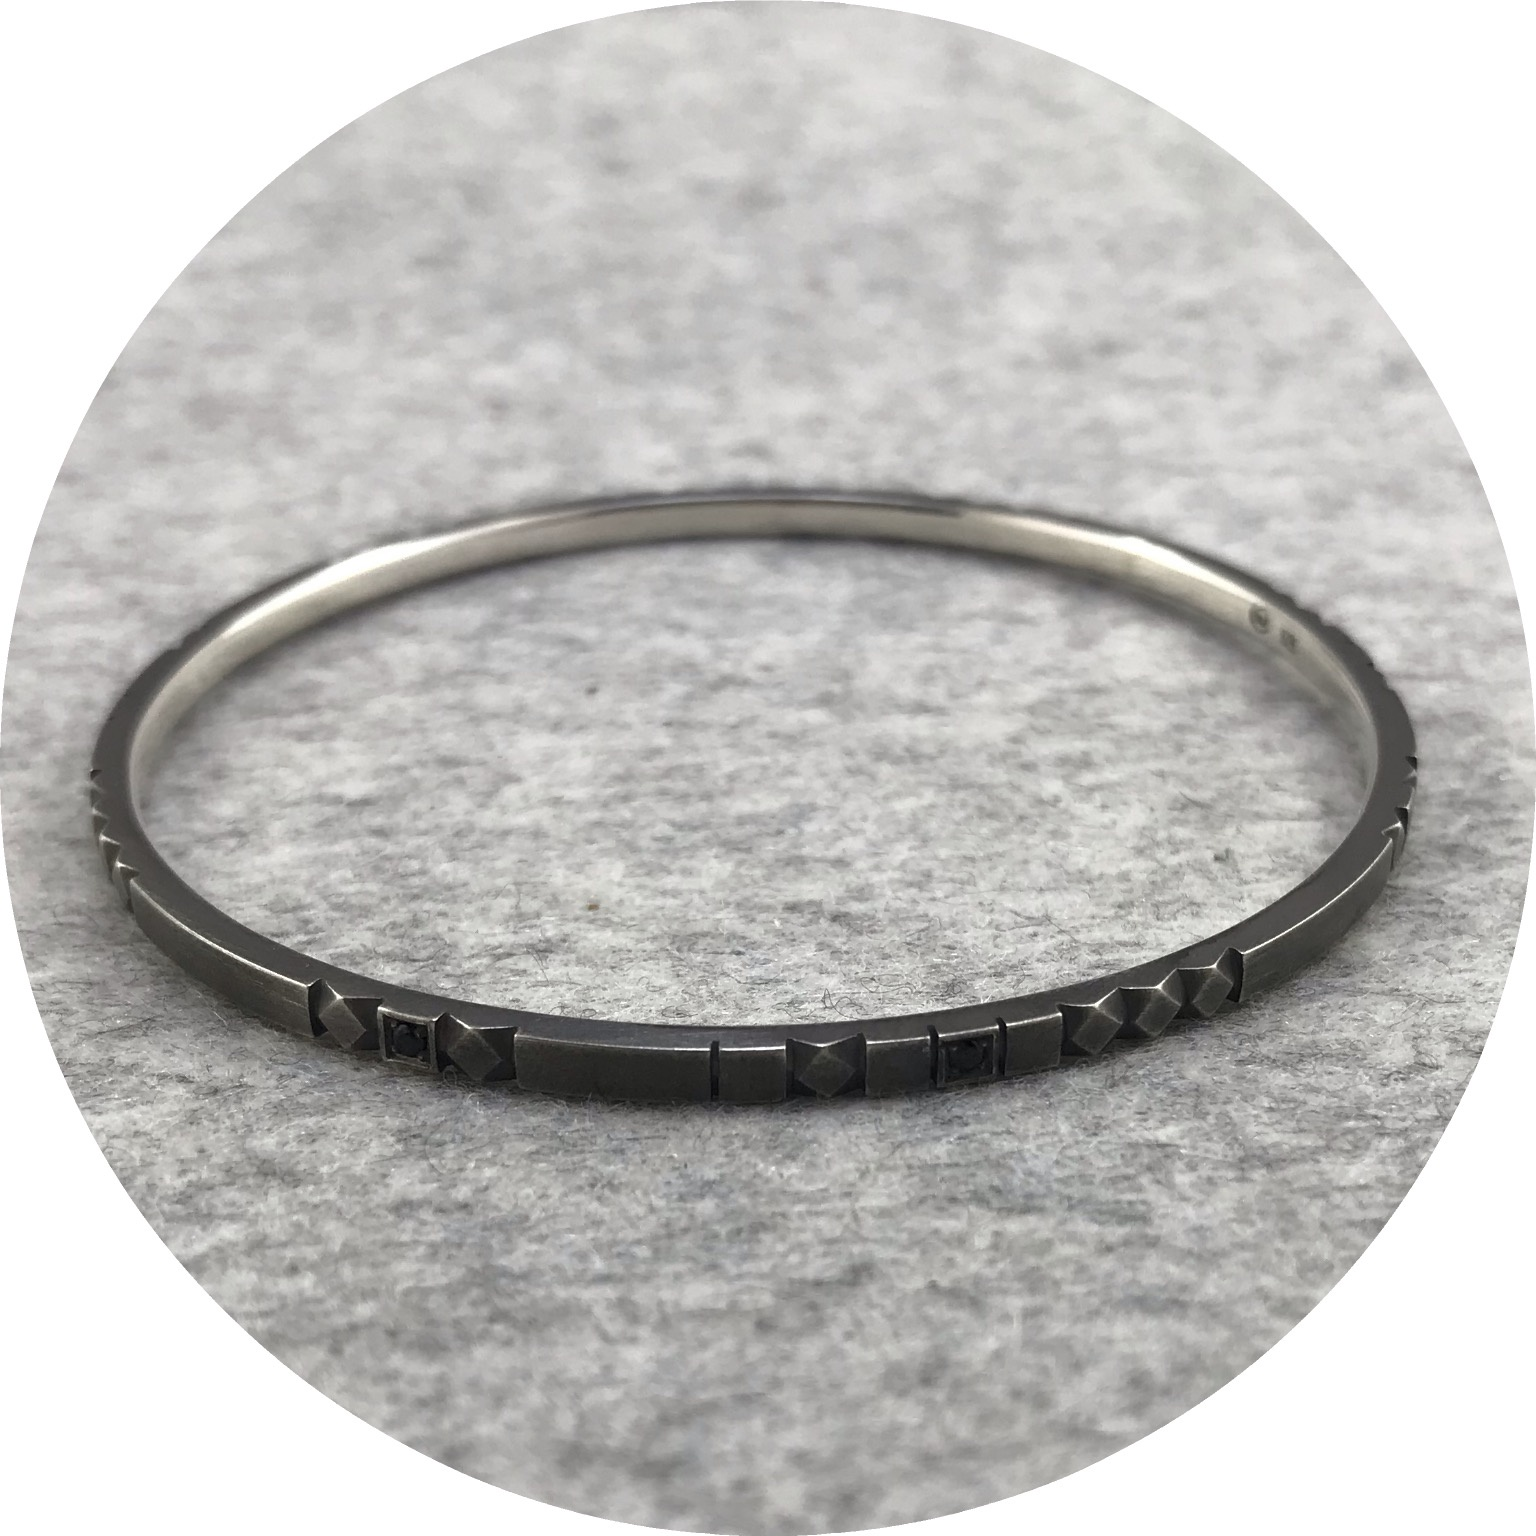 Eli Speaks - Mosaico Bangle in Brushed Oxidised Sterling Silver with Black Spinels.